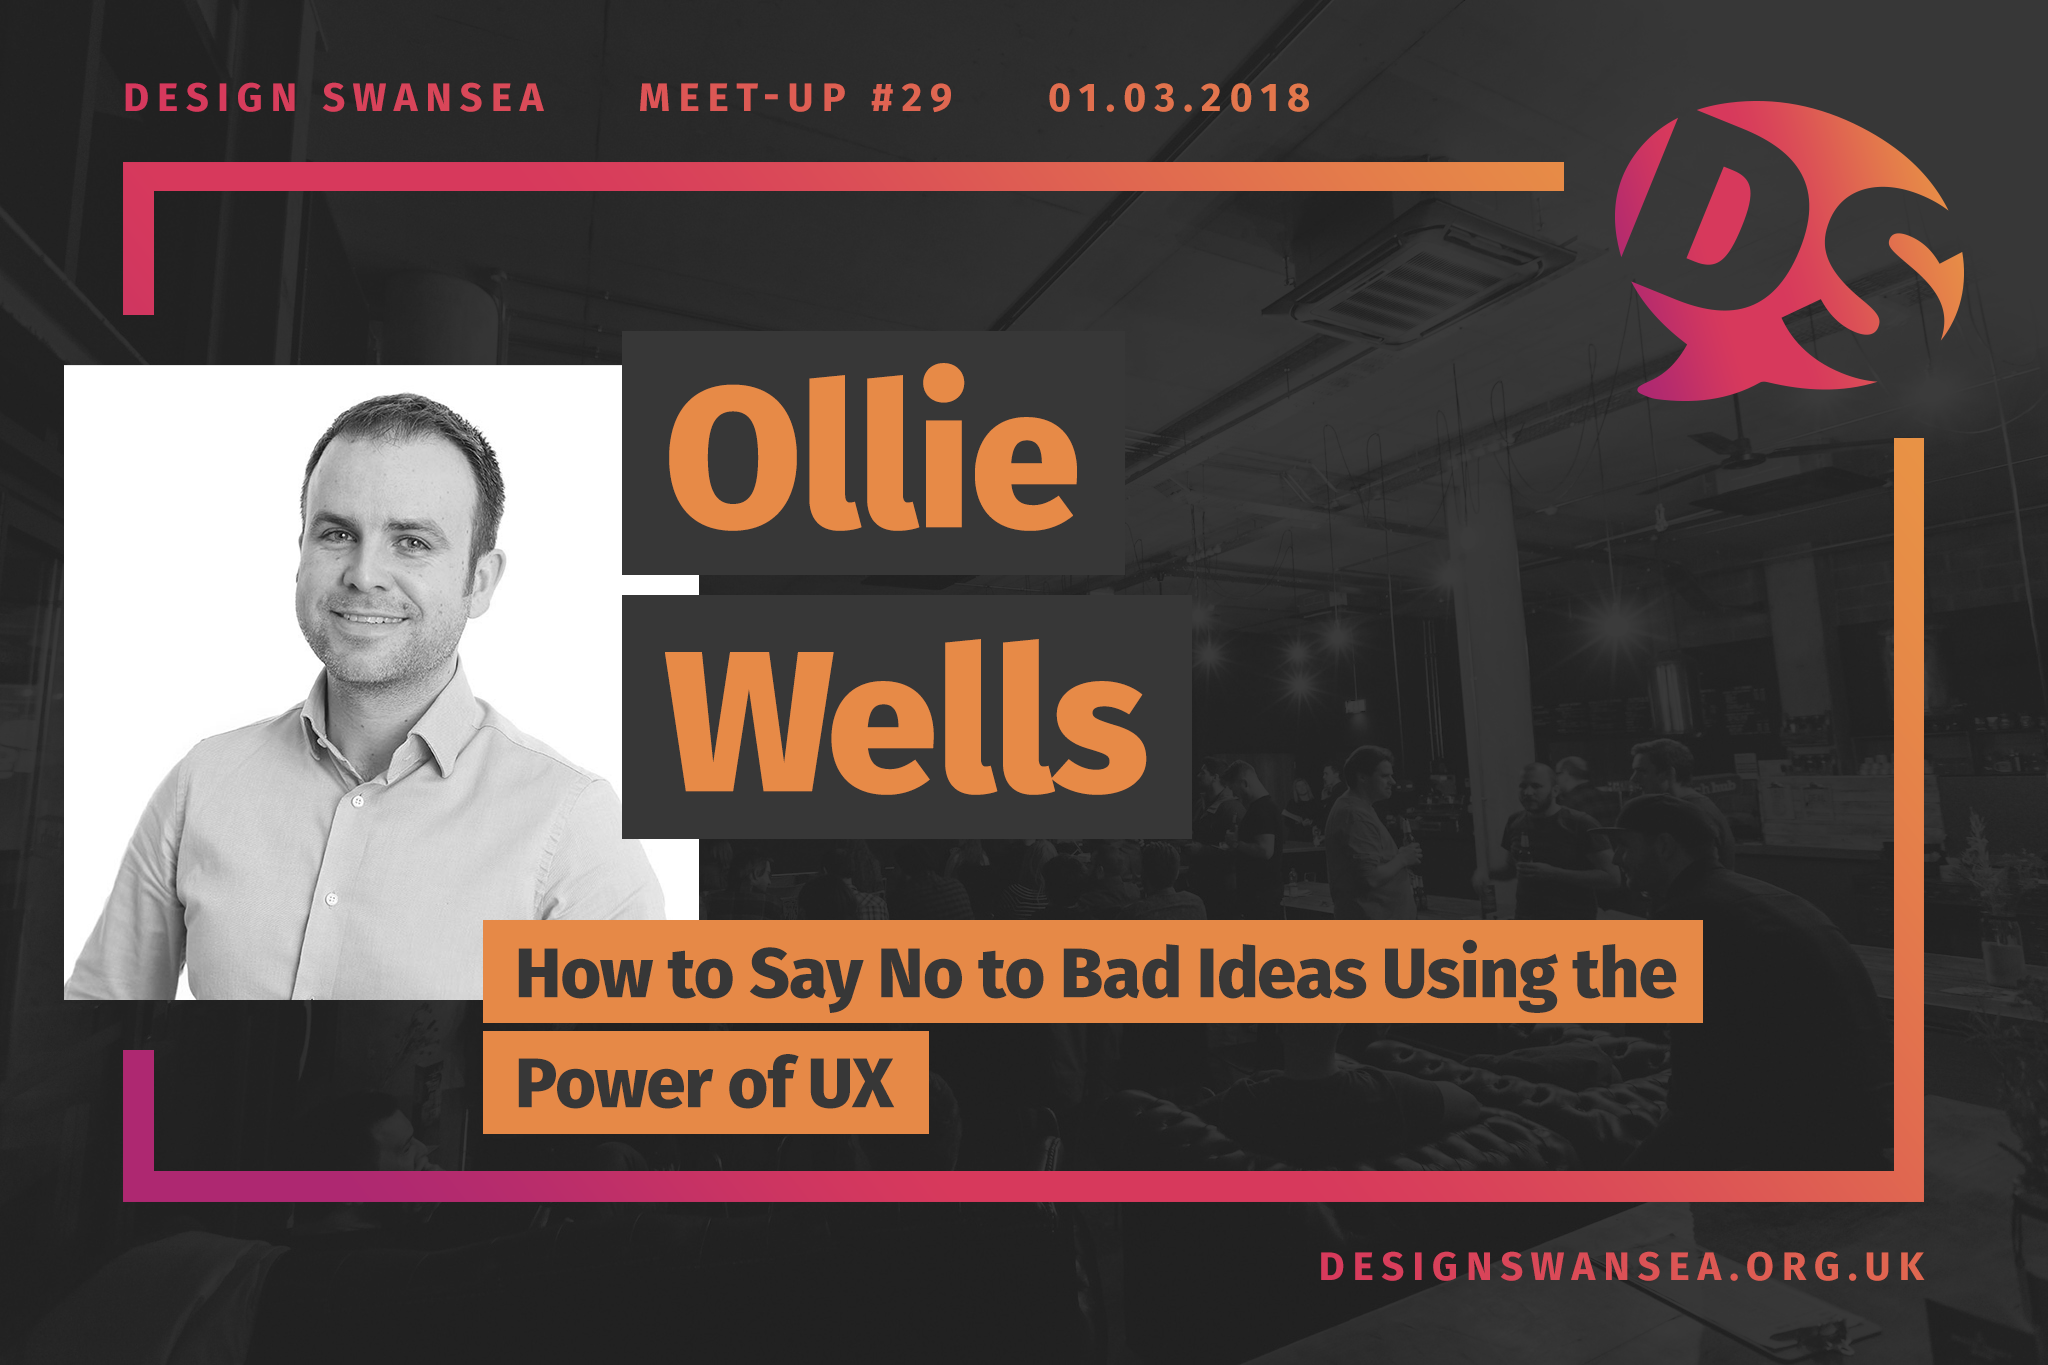 Ollie Wells from Uprise VSI will be talking at Design Swansea